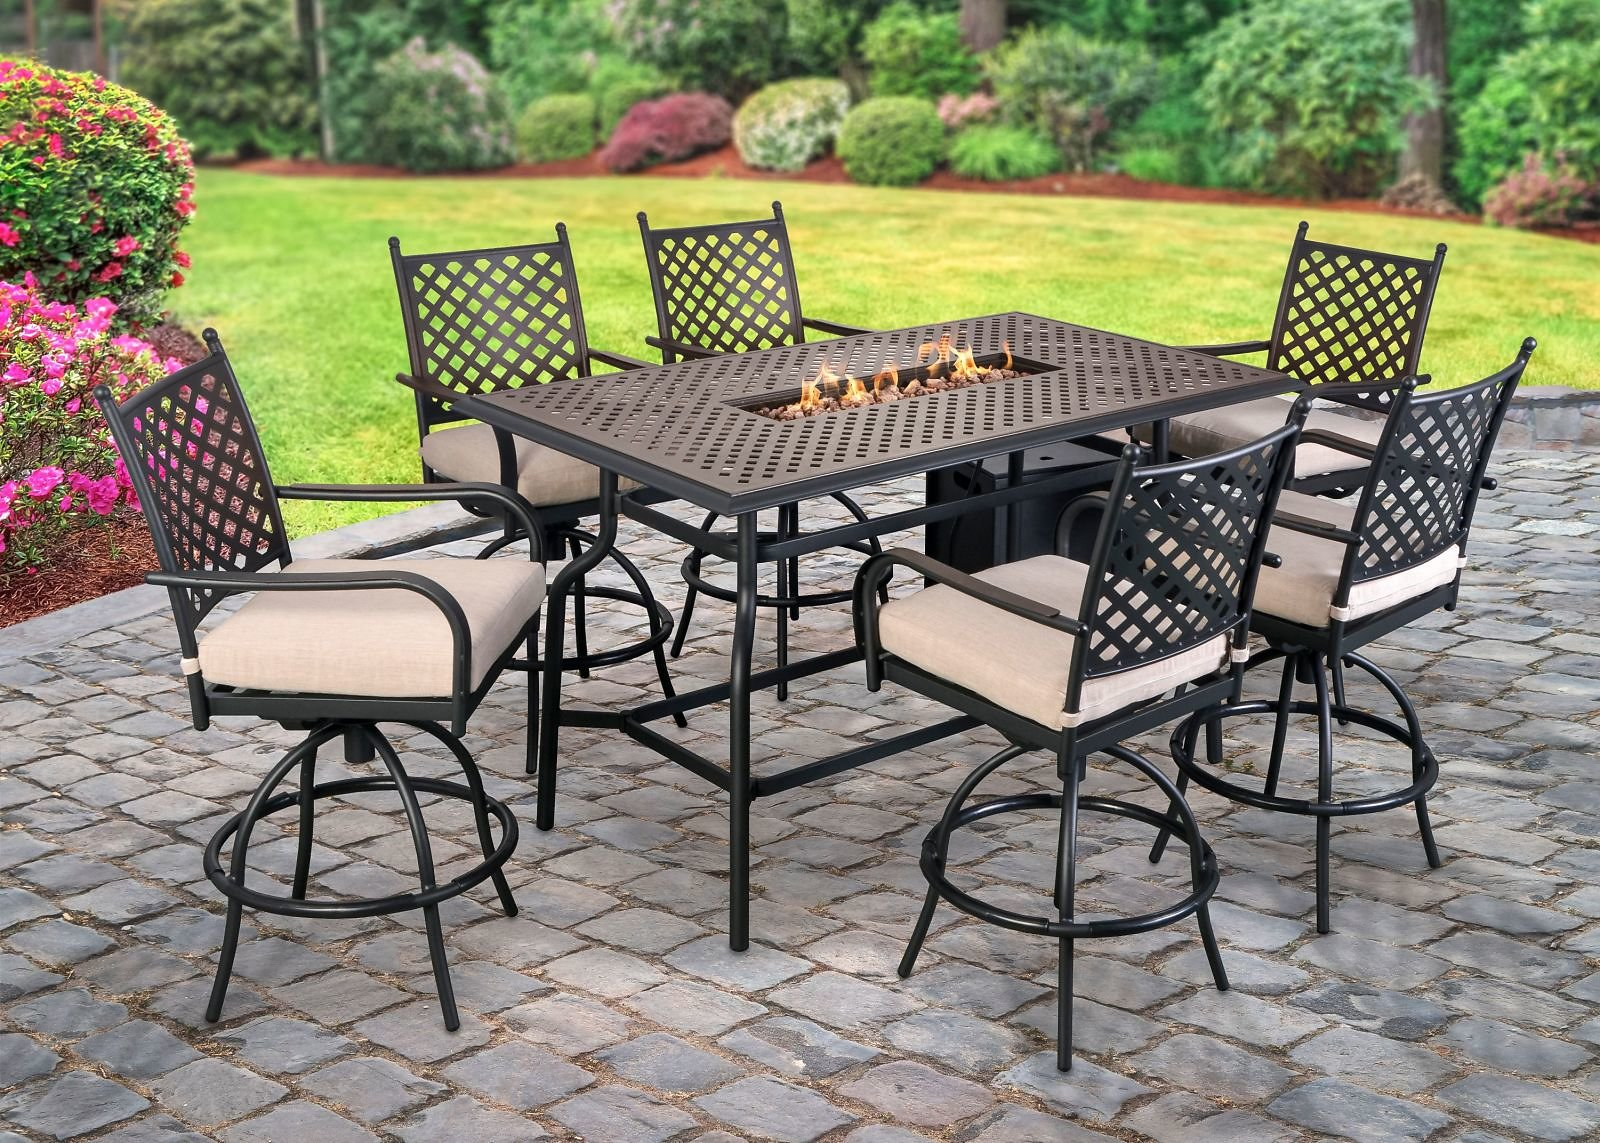 Berkley Jensen Westland 8-Pc. High Dining Set with Fire Table - BJs WholeSale Club